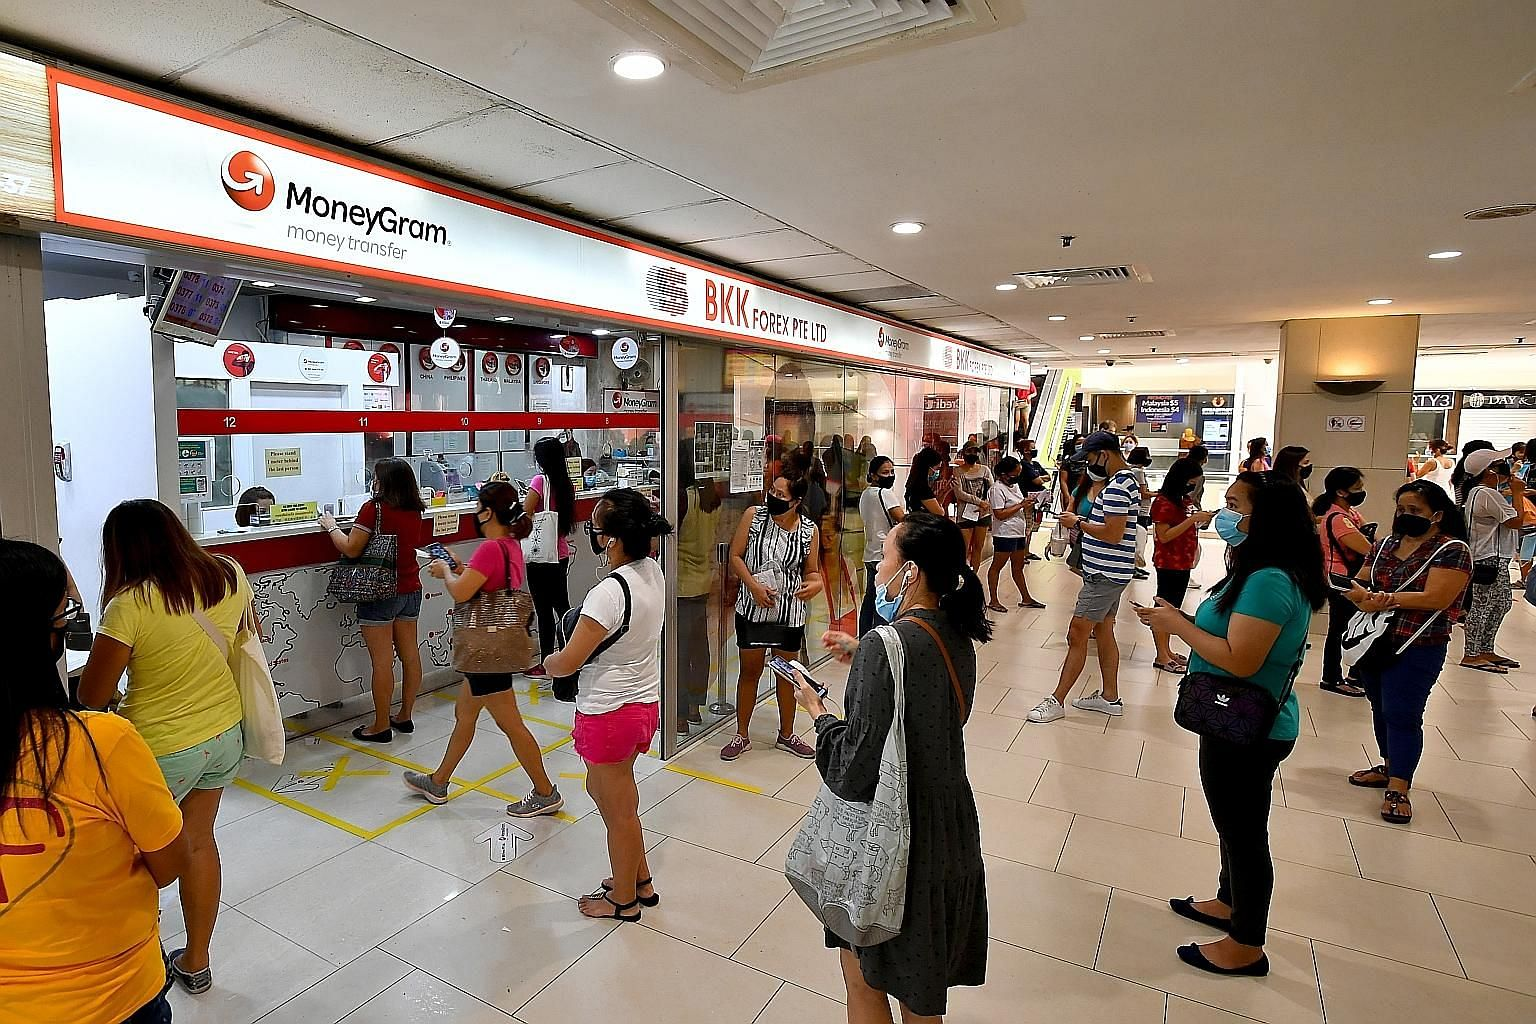 People queueing for remittance services at Lucky Plaza on May 31, even before the circuit breaker period had ended. Many domestic workers are their families' breadwinners, and sending money home could mean their loved ones being able to have their ne